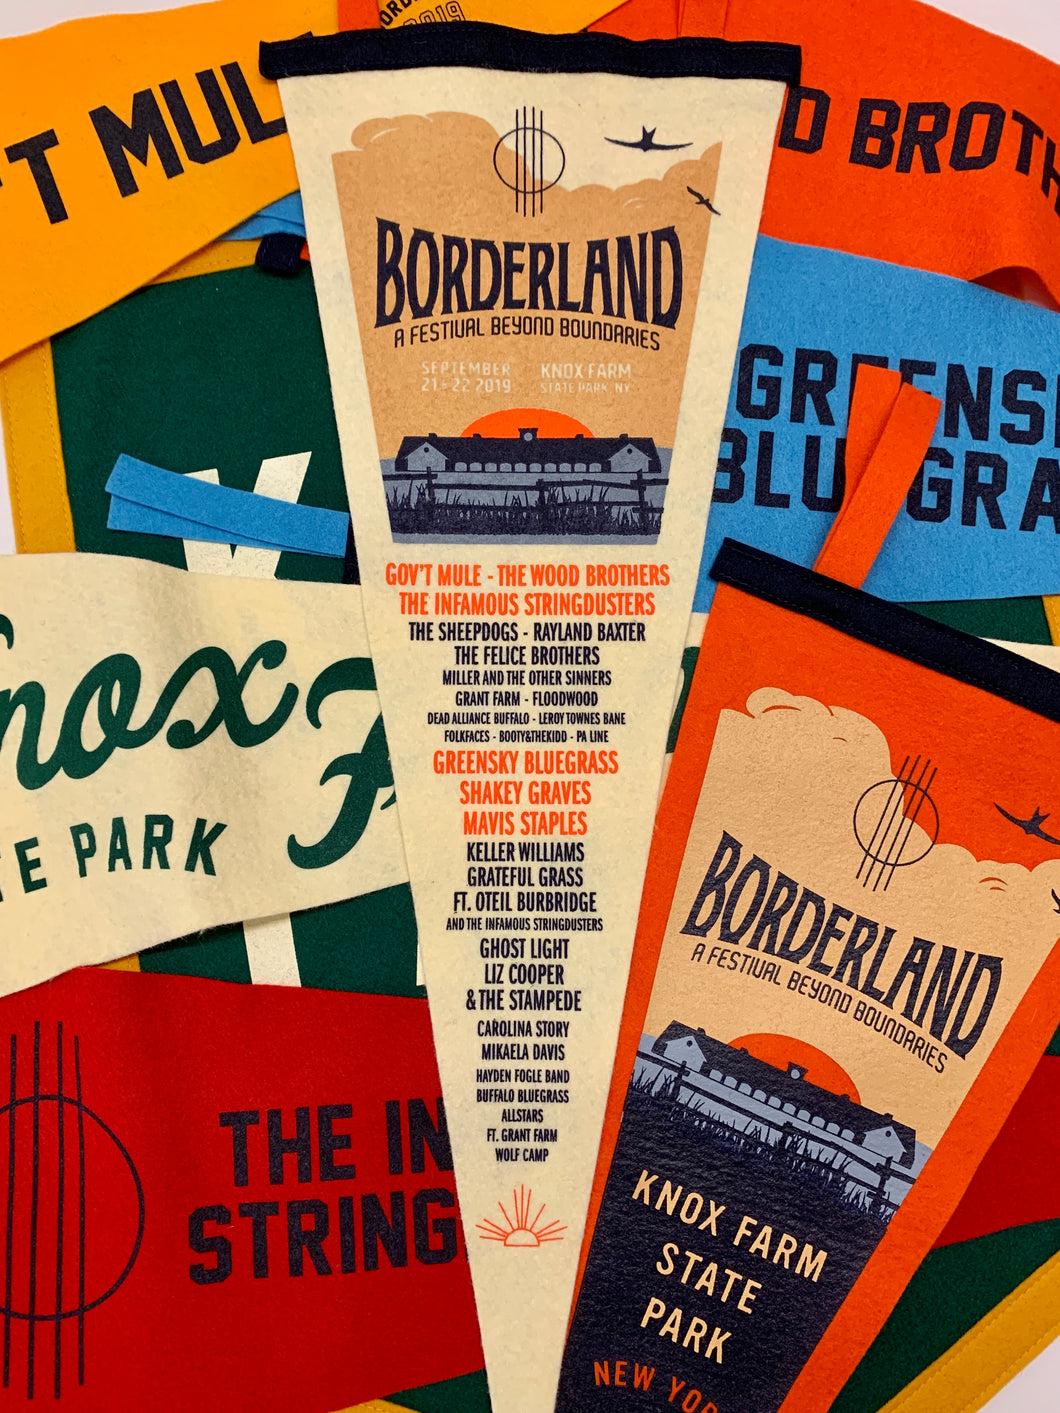 Borderland Festival Pennant by Oxford Pennant